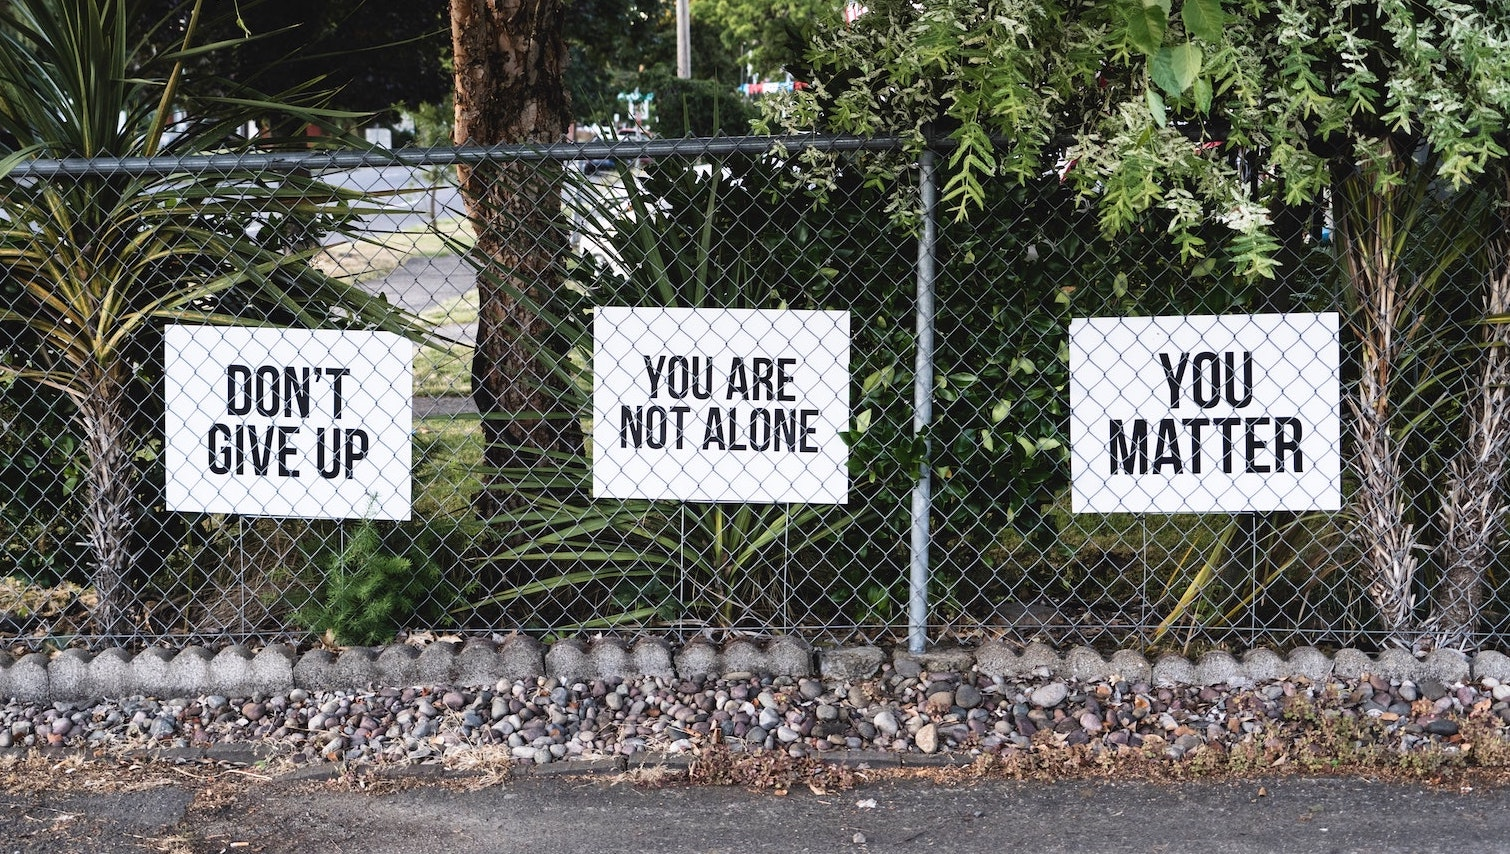 don't give up you are not alone you matter